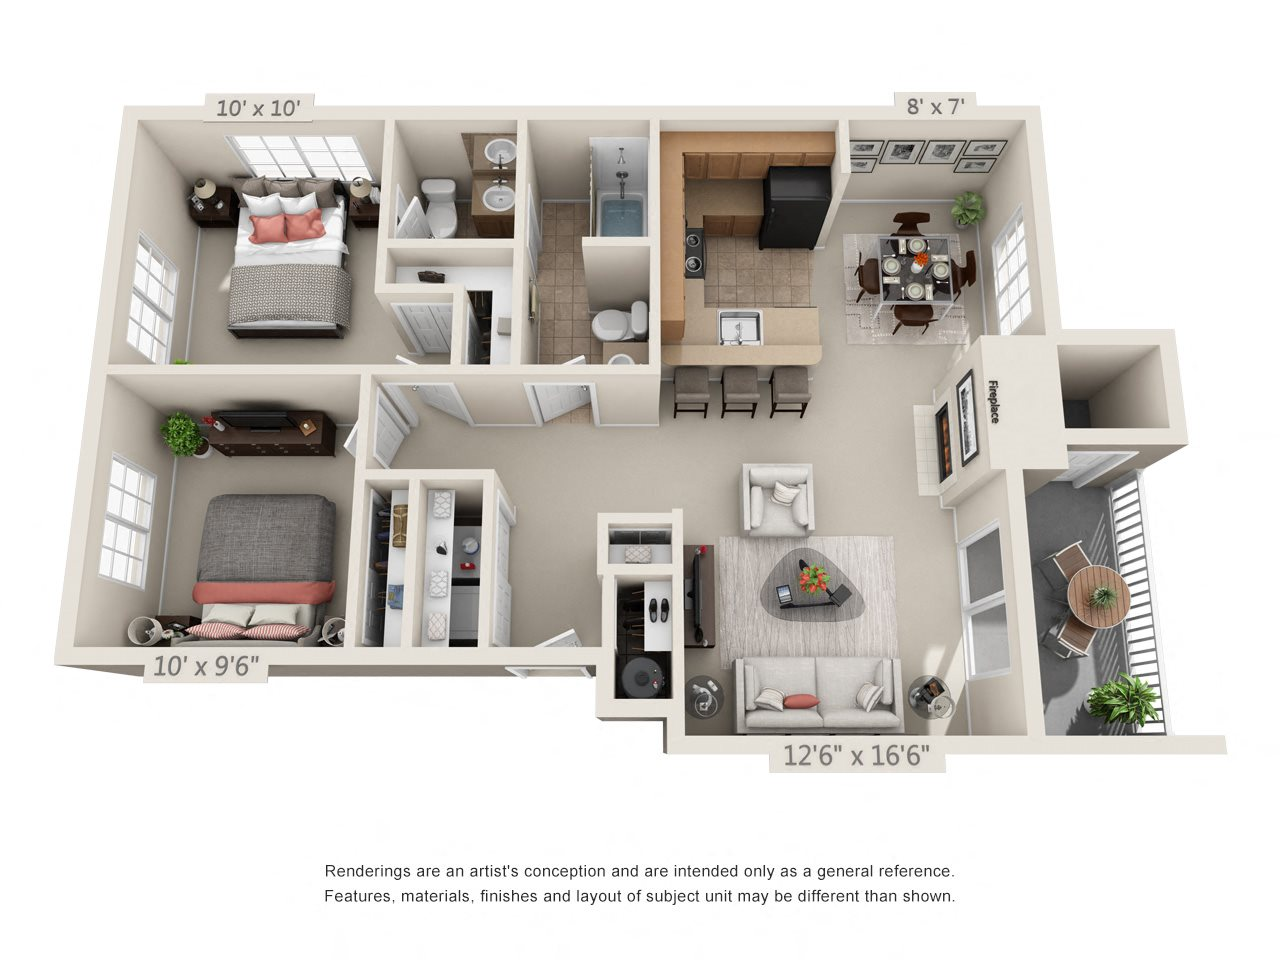 2 Bedroom 1.5 Bathroom - B1 Floor Plan 3